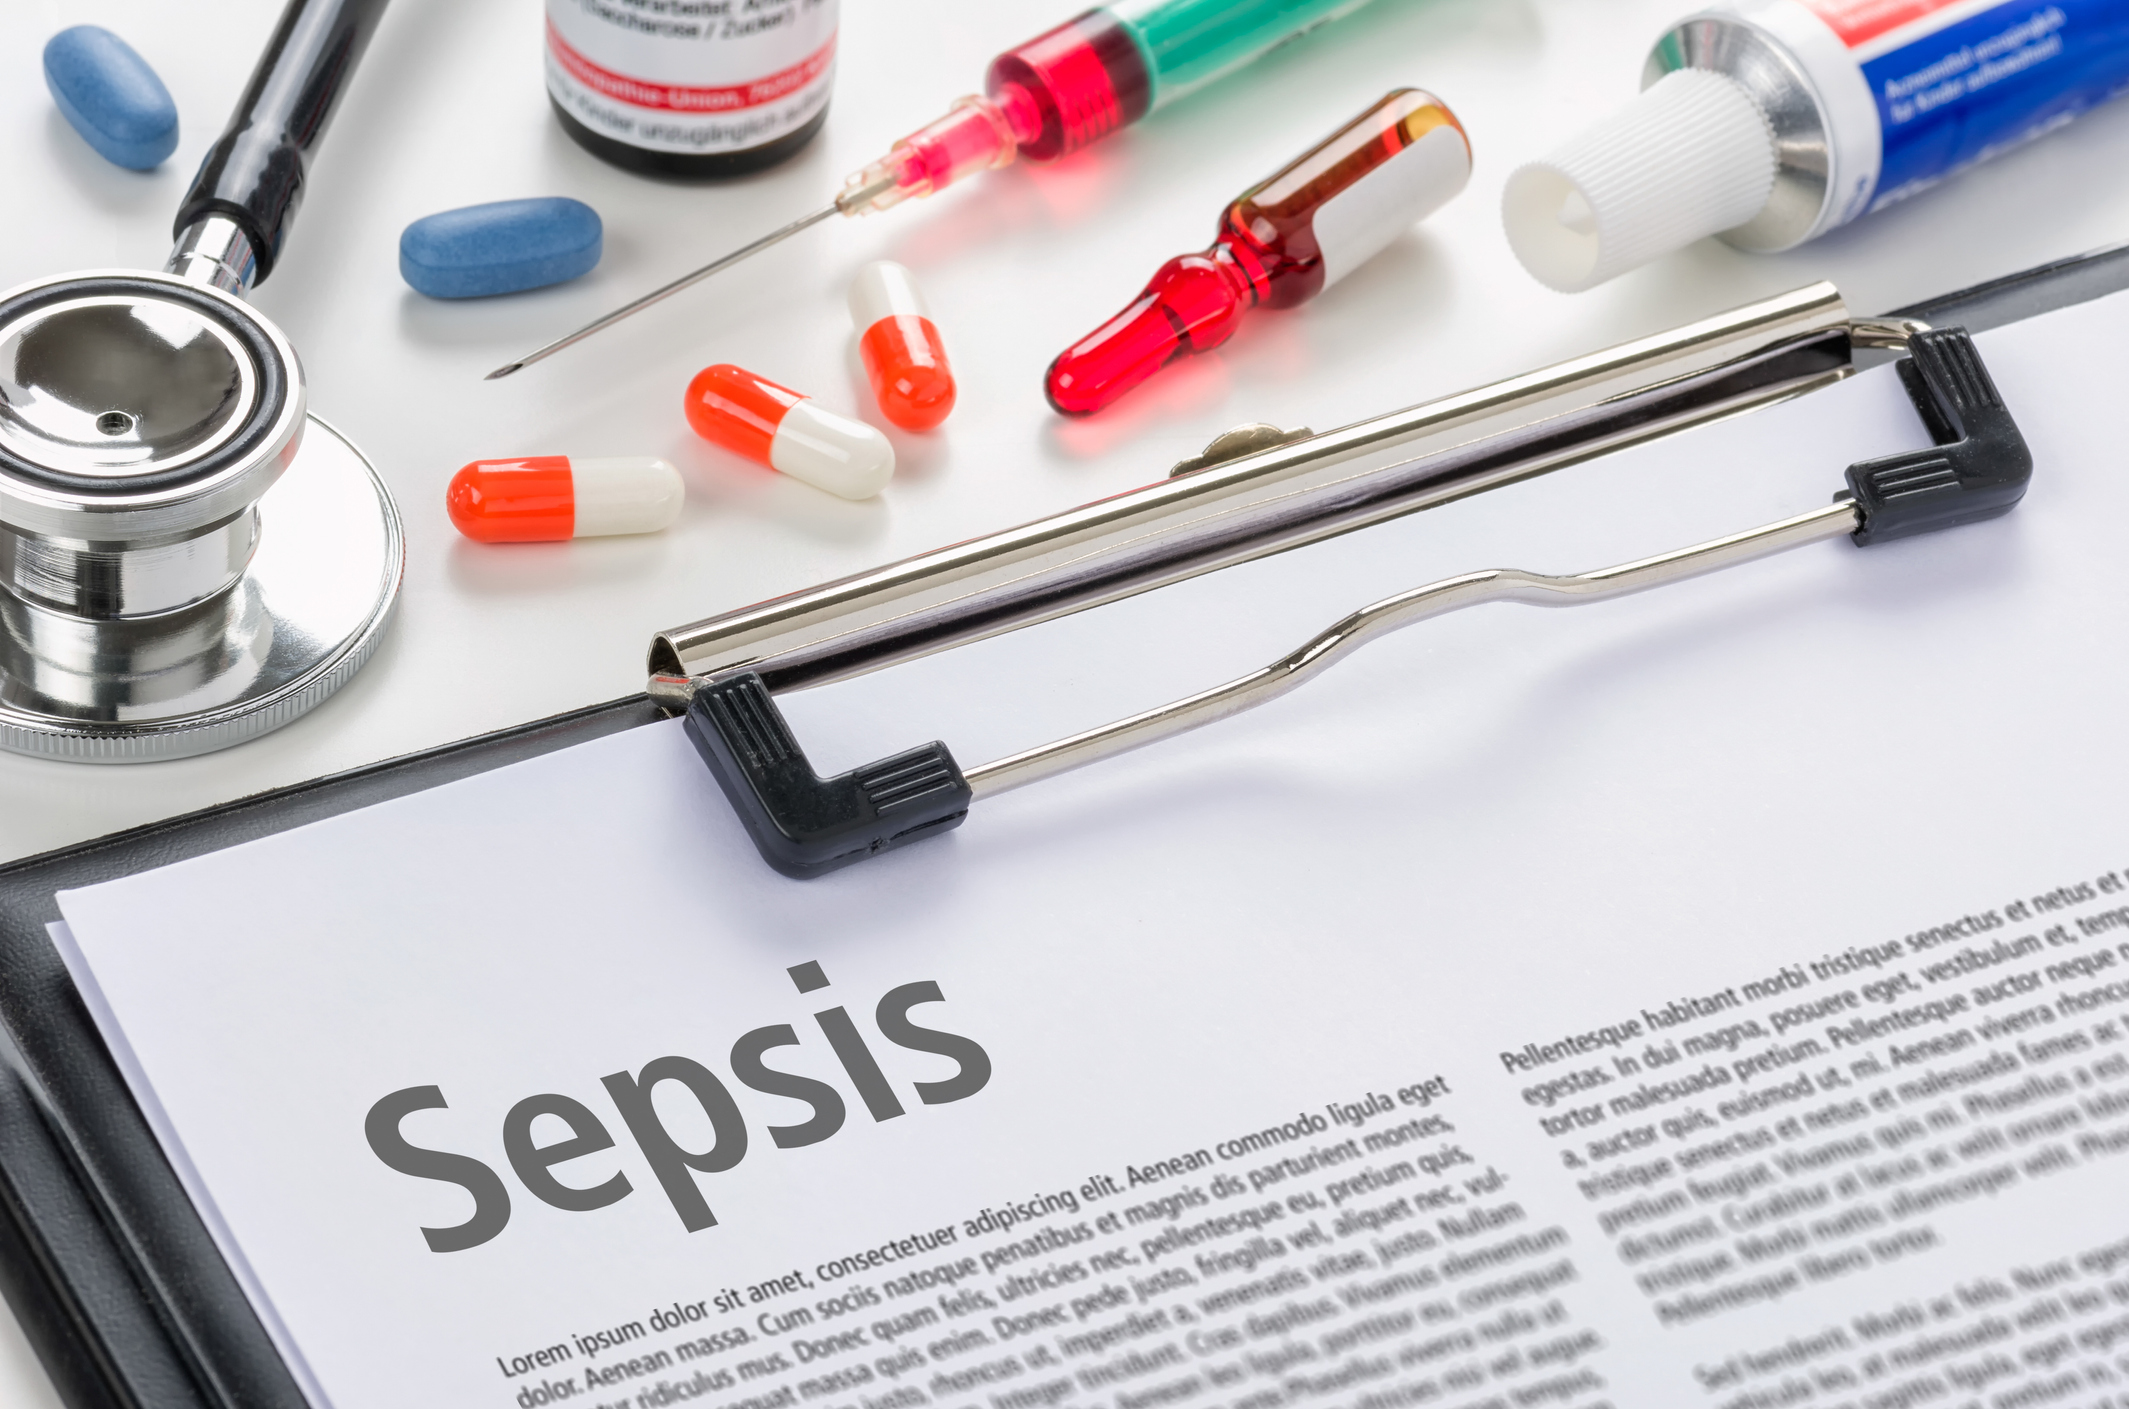 The diagnosis Sepsis written on a clipboard. Image credit: iStock